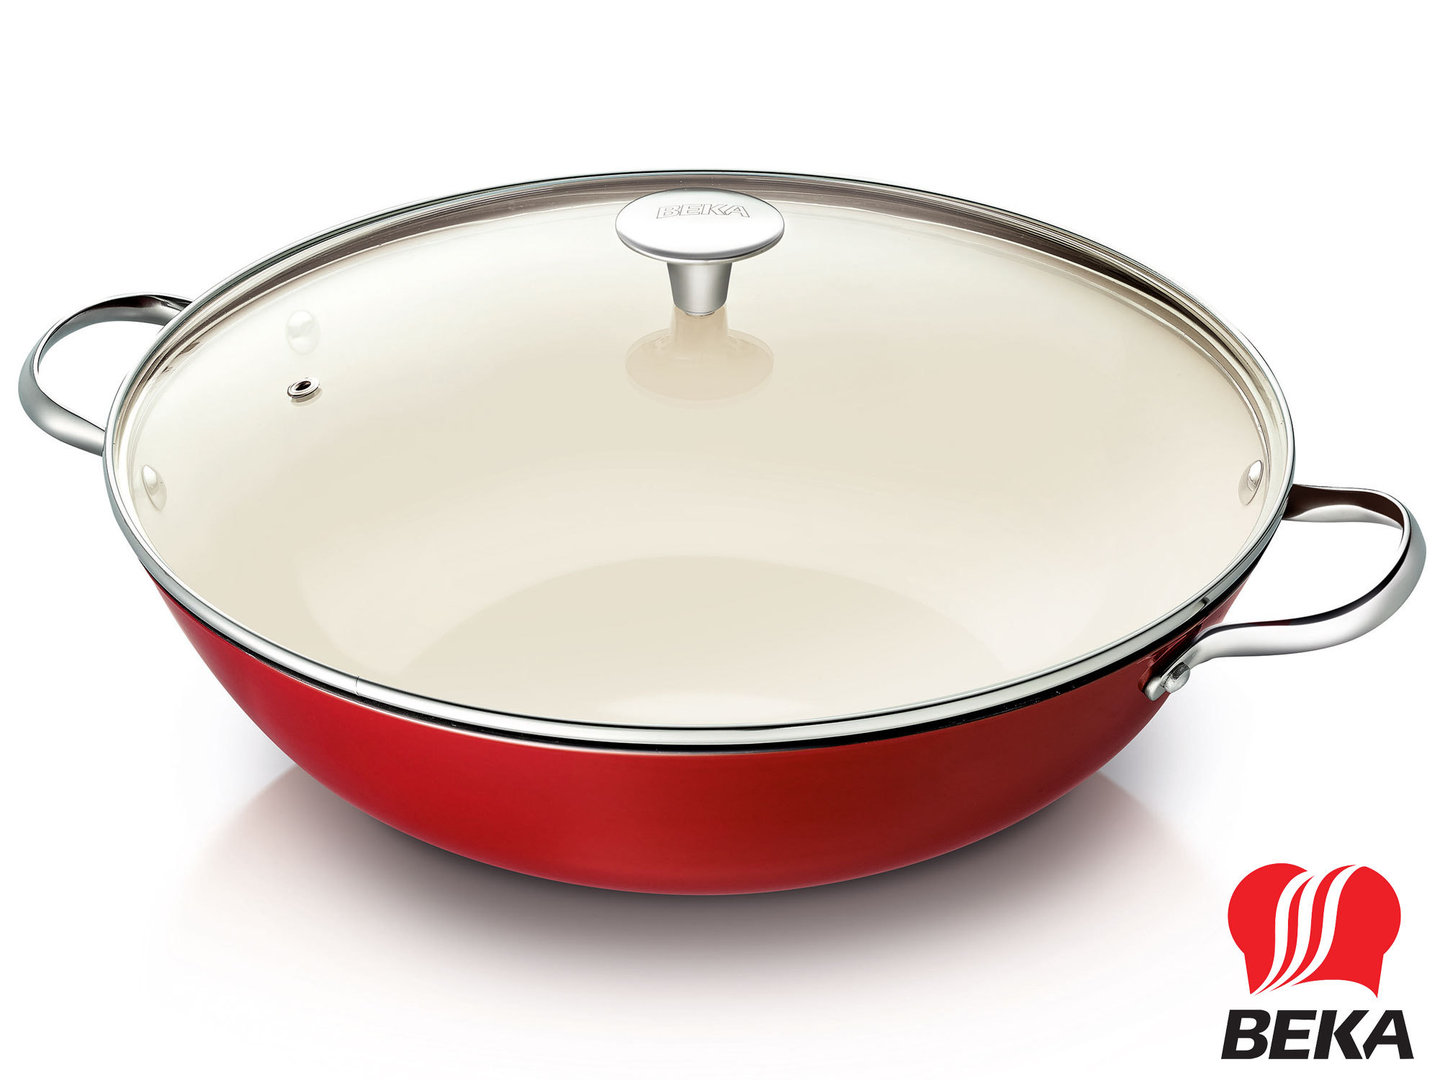 BEKA cast iron wok AROME 34 cm enamel red and ivory with glass lid